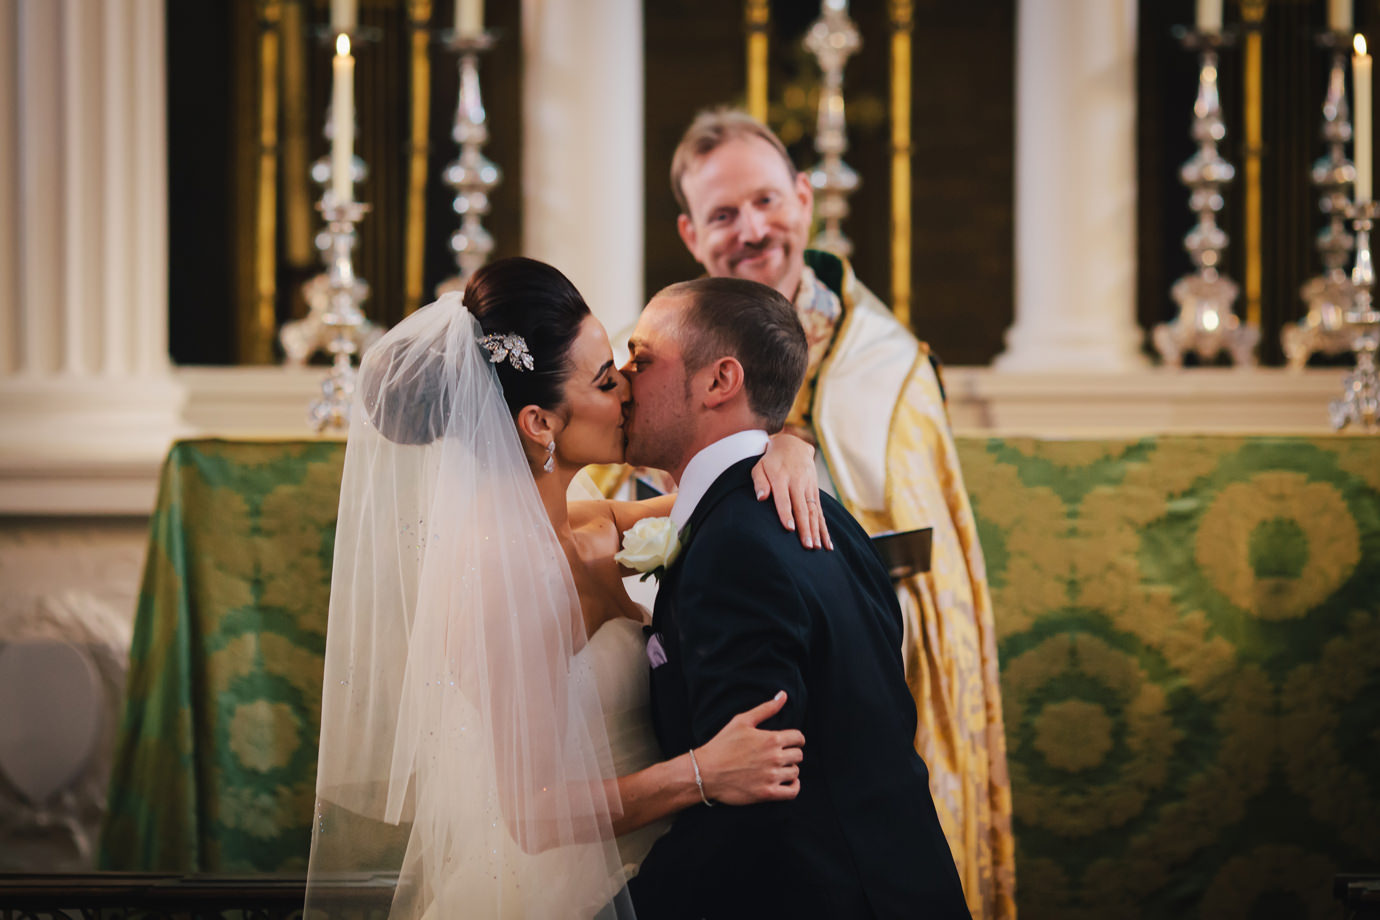 The first kiss, London wedding photography, Grosvenor Chapel, Mayfair